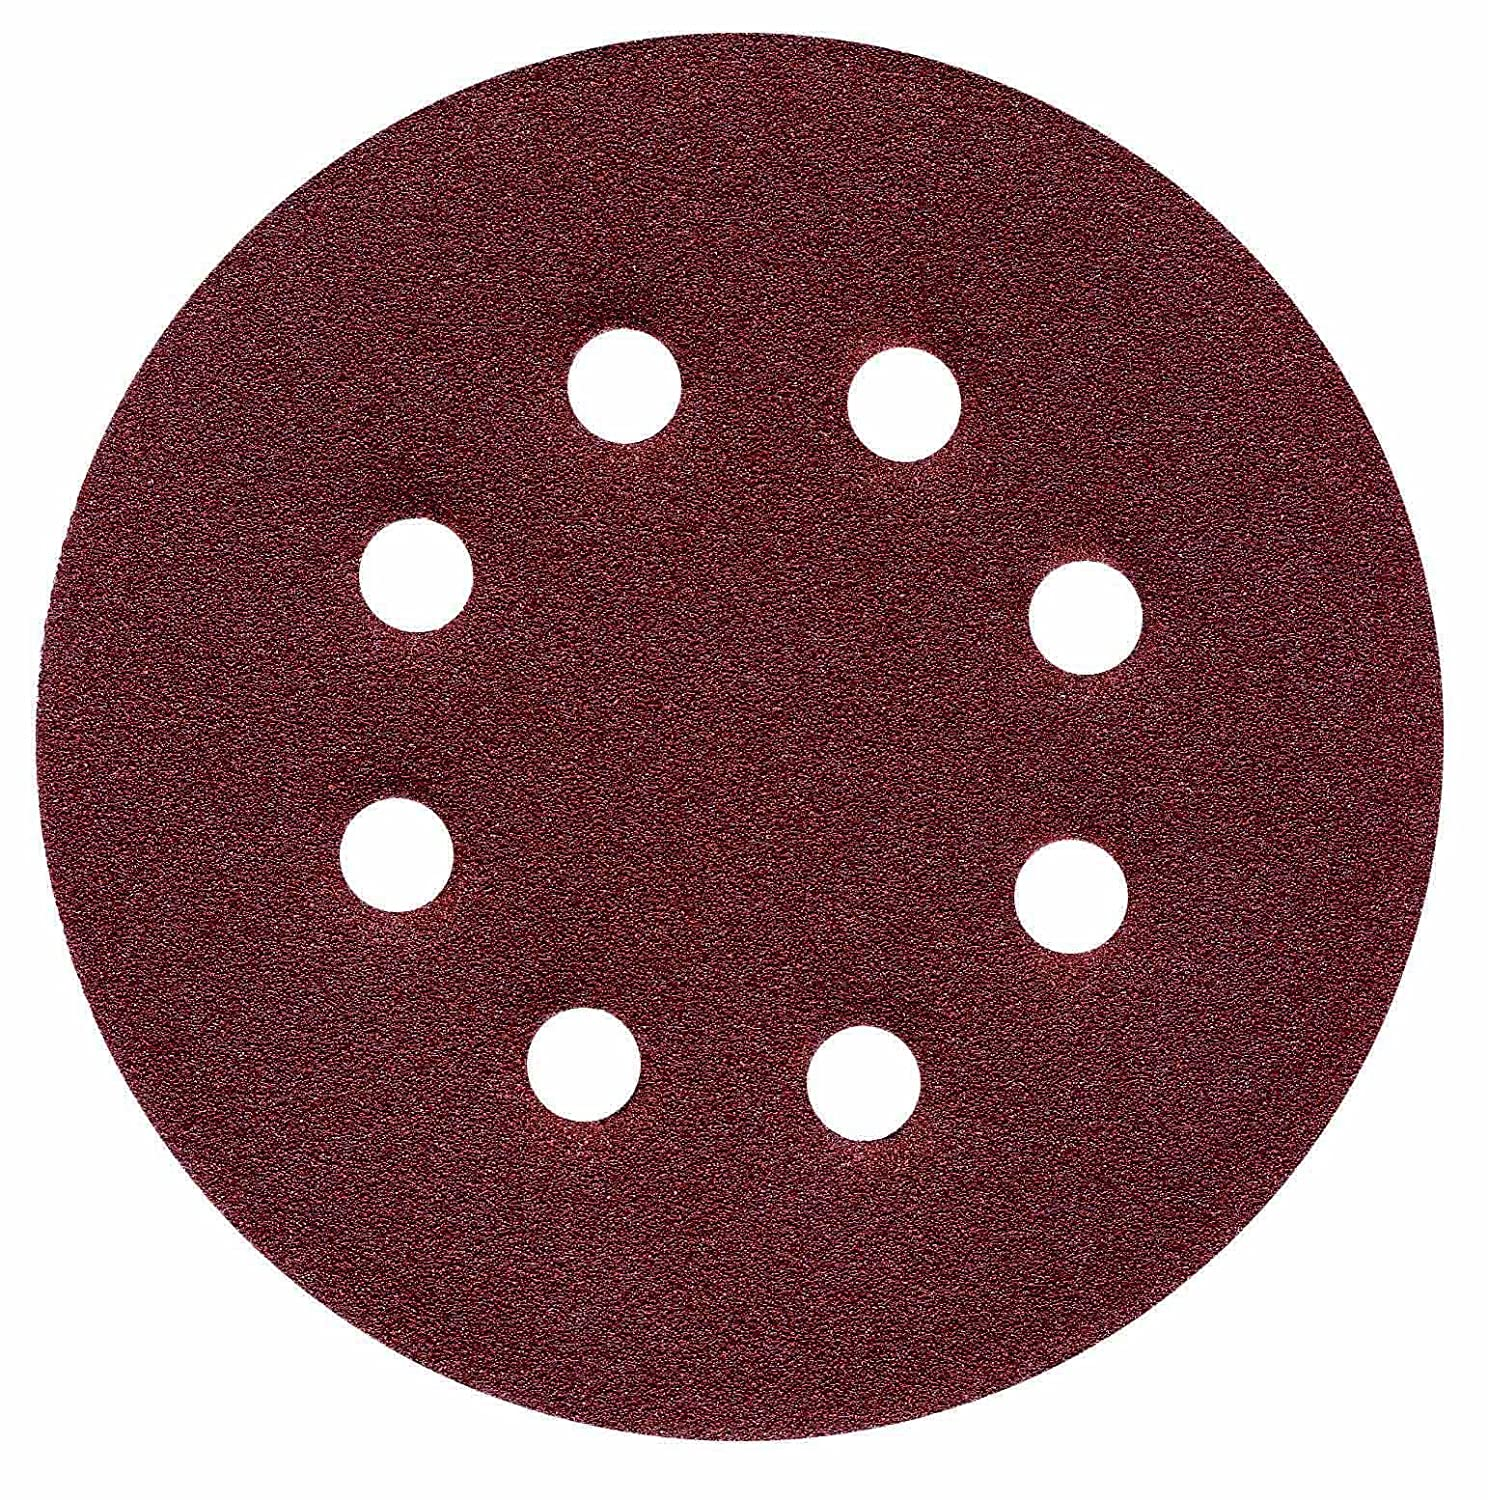 CS Hyde 19-5R UHMW .005 Mil Tape with Rubber Adhesive 5.125 x 36 Yards 5.125 x 36 Yards CS Hyde Company Inc 19-5R-5.125-36